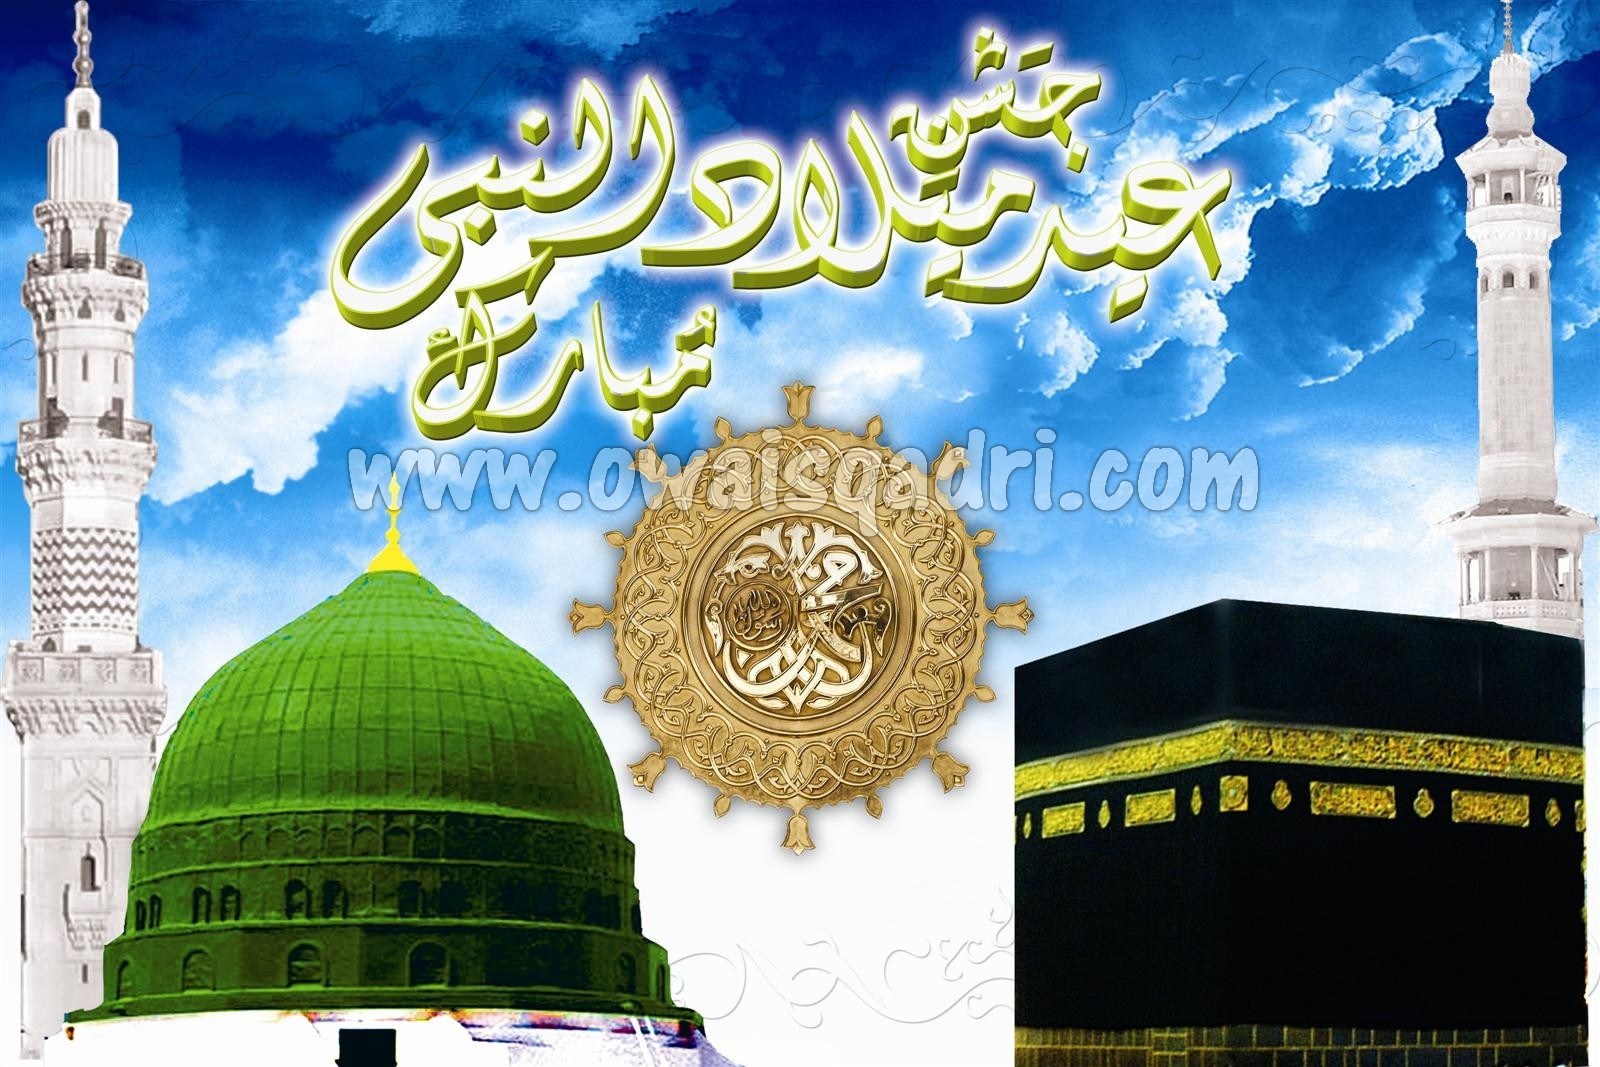 Picture Gallery, Photos & Wallpapers | Owais Qadri | The